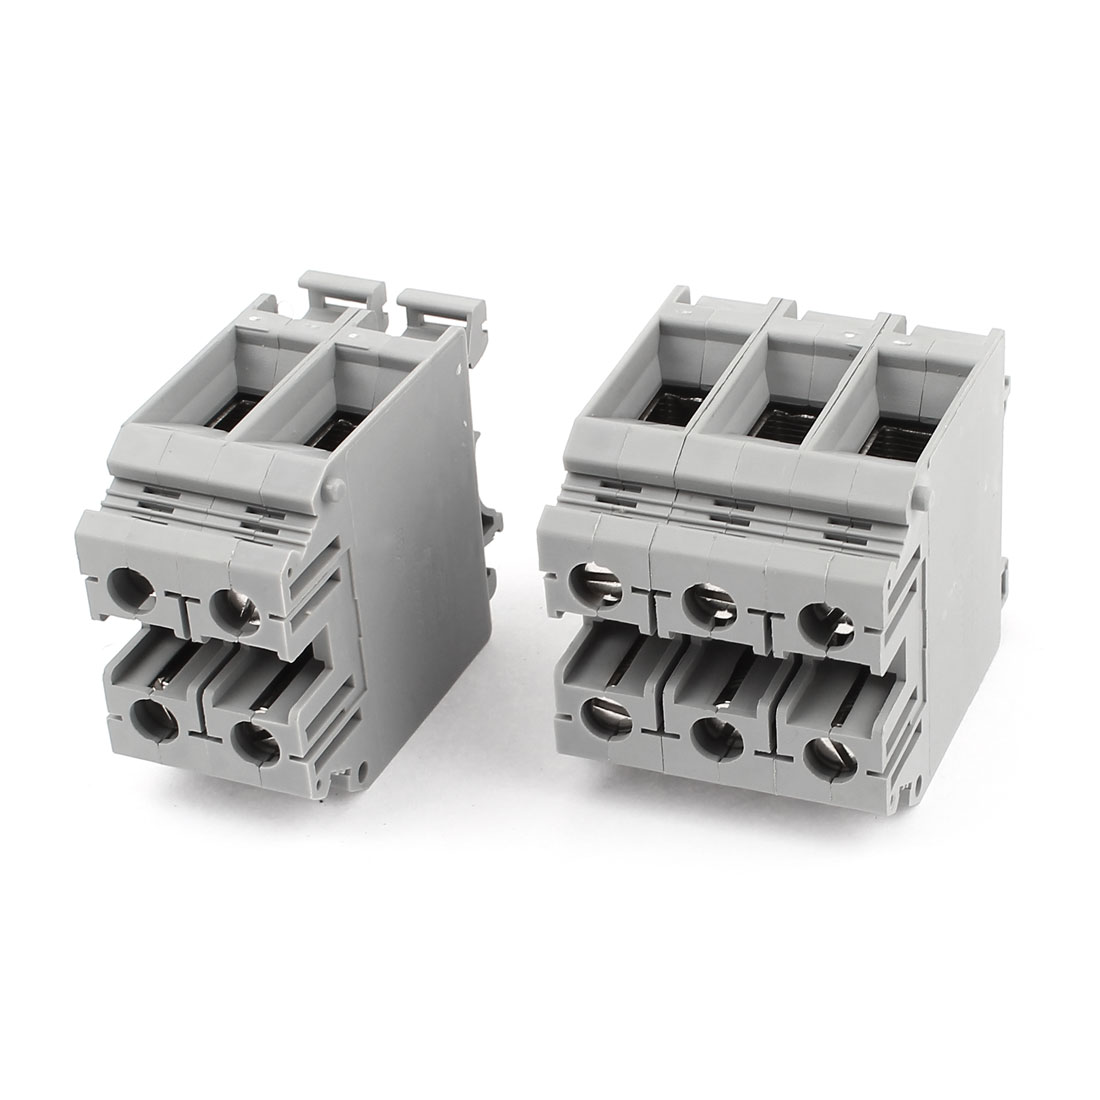 5 Pcs UKH35 Rail Mount 0.75-35mm2 Wire Screwless Terminal Block Gray 800V 150A